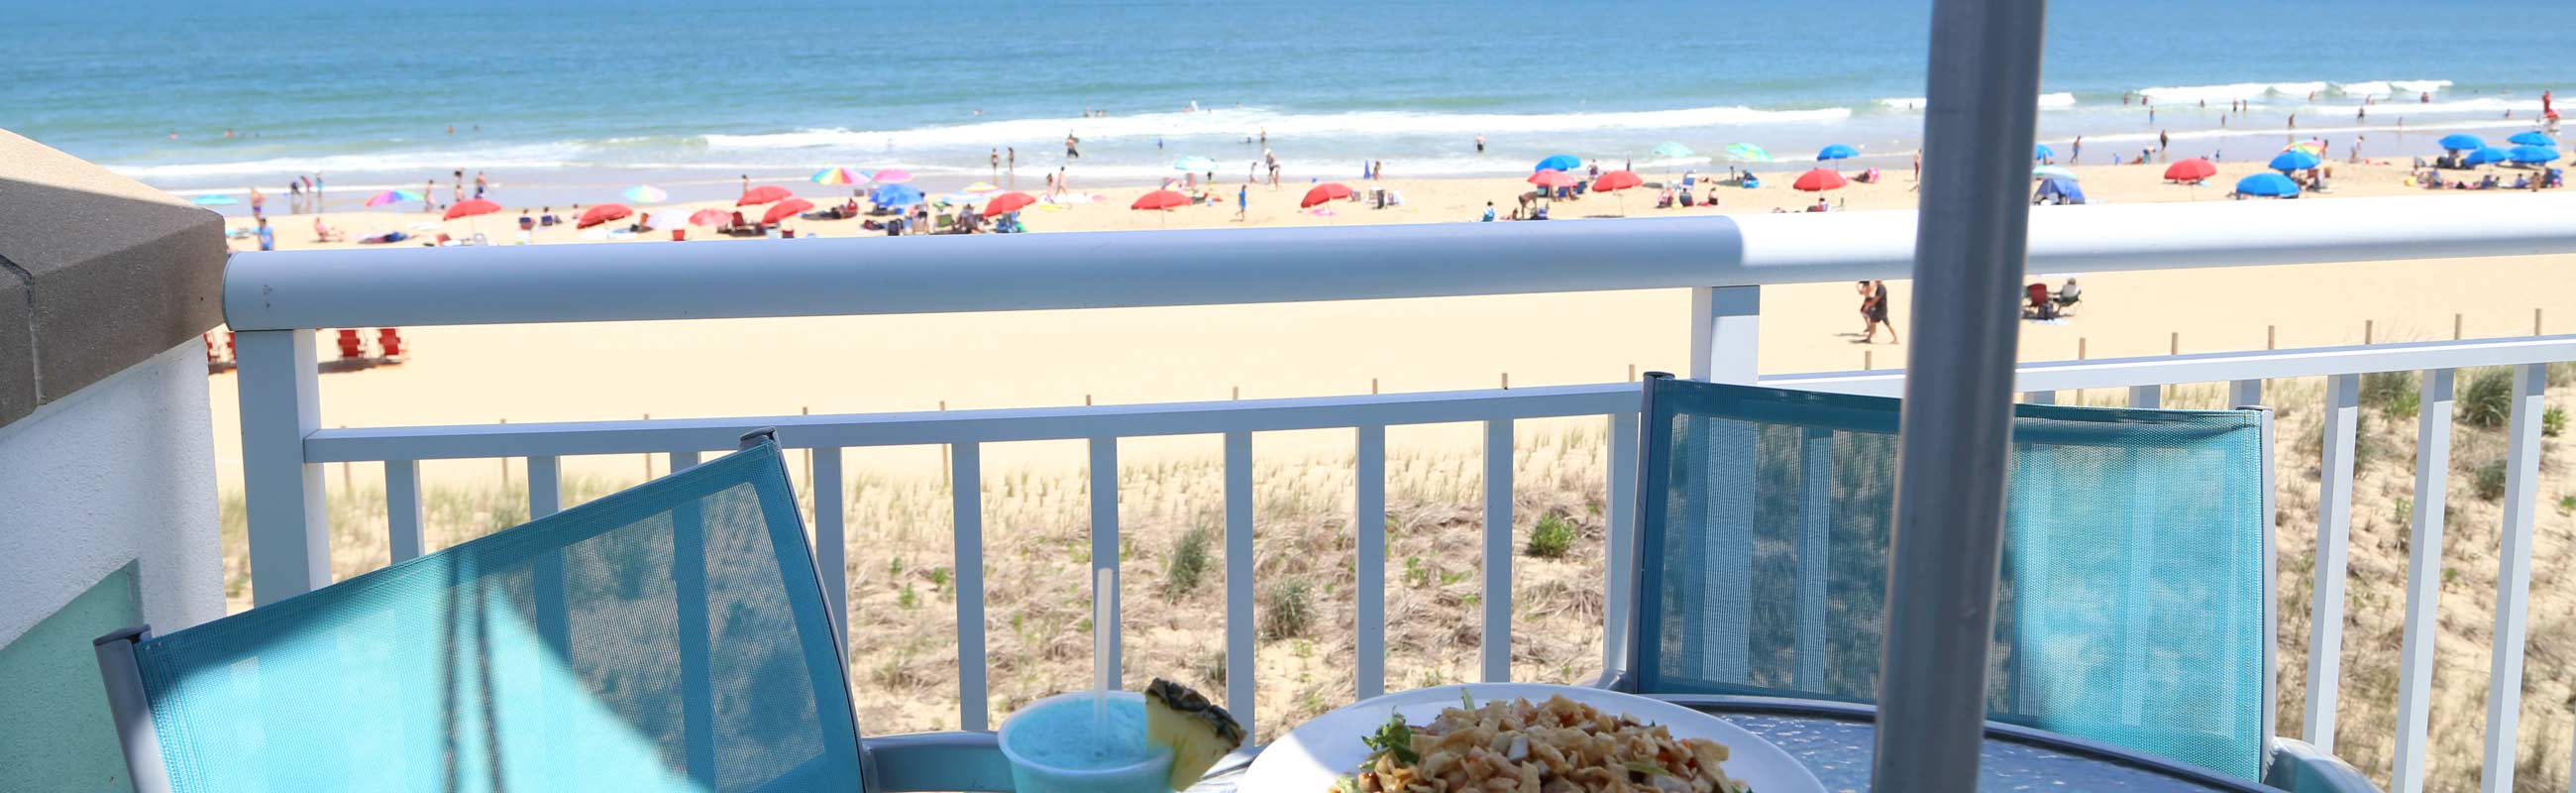 oceanfront dining experience at the hilton ocean city maryland